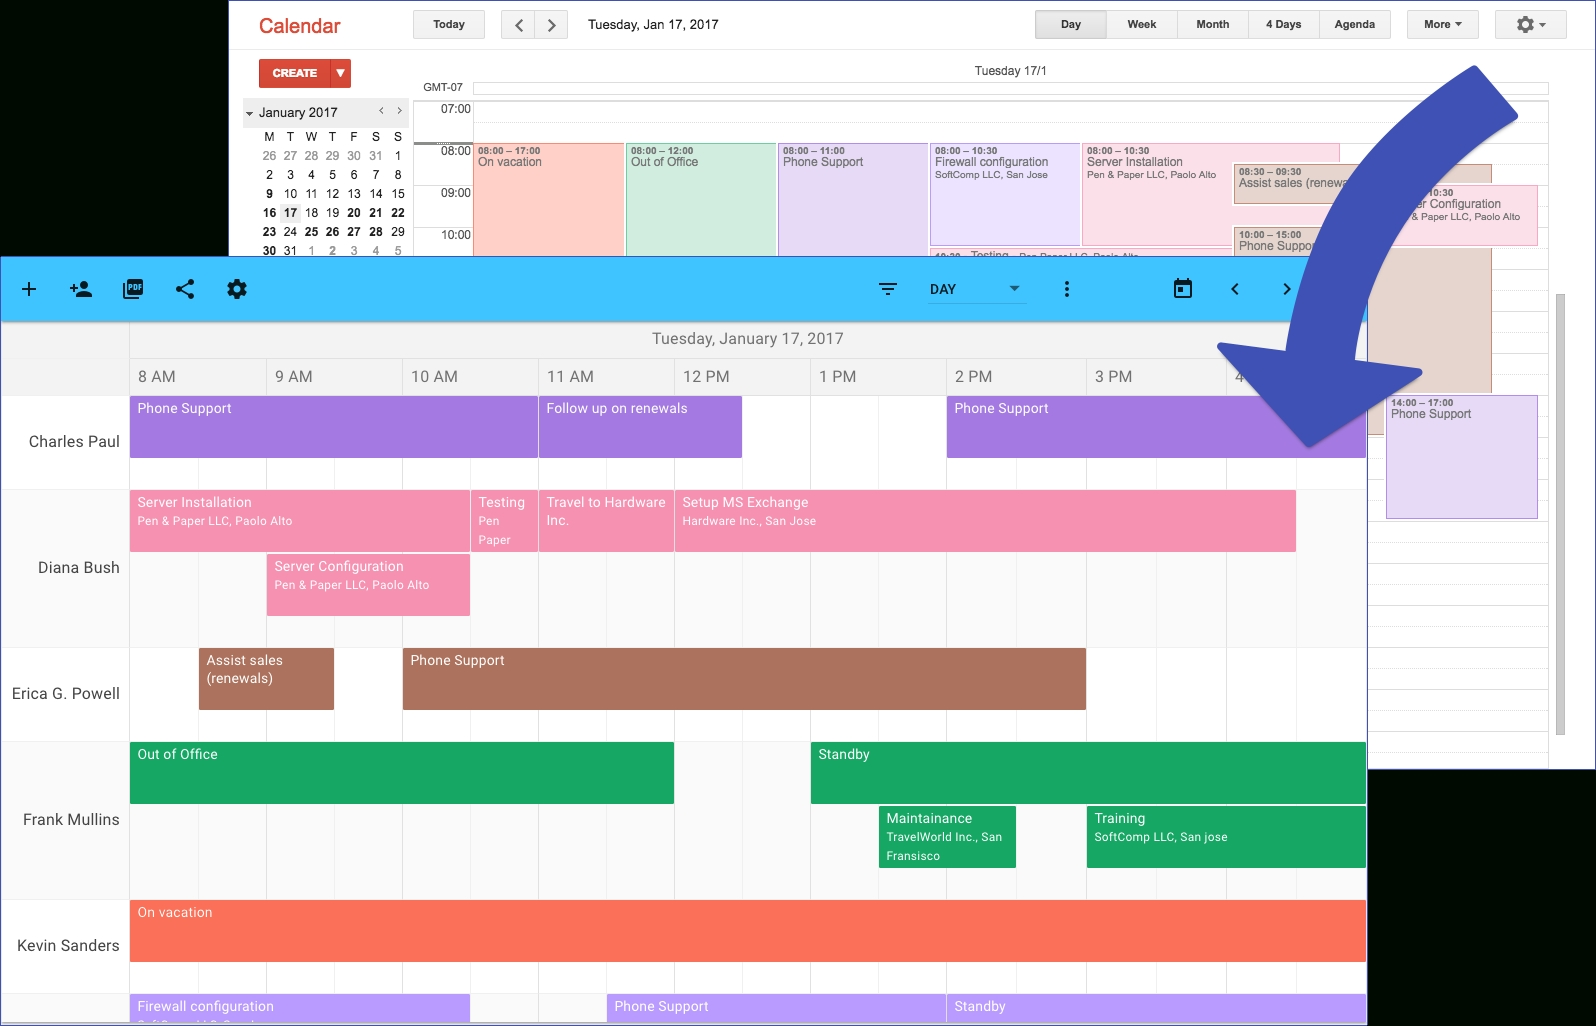 Teamcal – Google Calendar's Missing Schedule View pertaining to Year At A Glance Calendar - Vacation Schedule For Staff